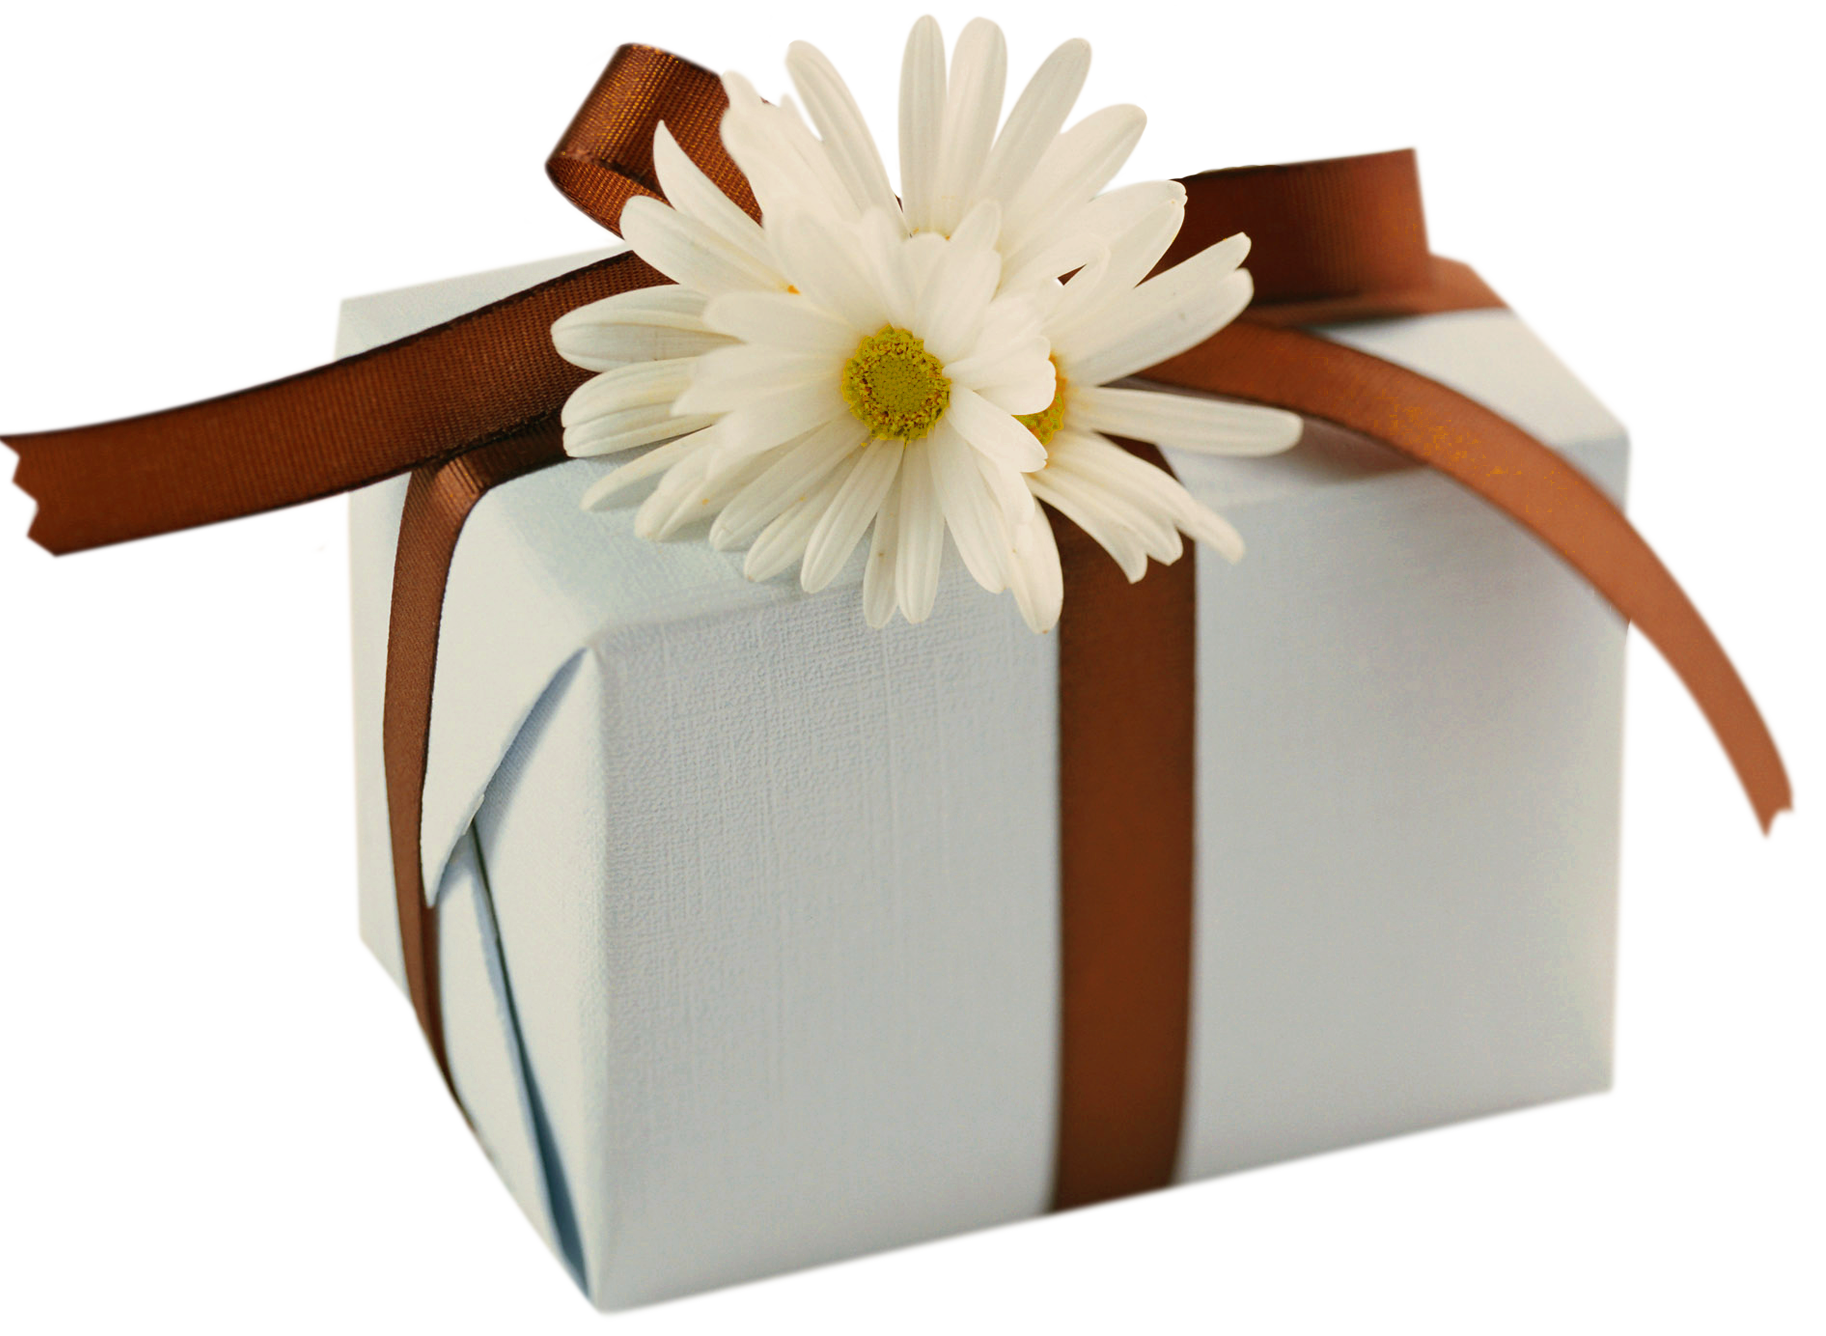 Daisies clipart bow. White present with brown